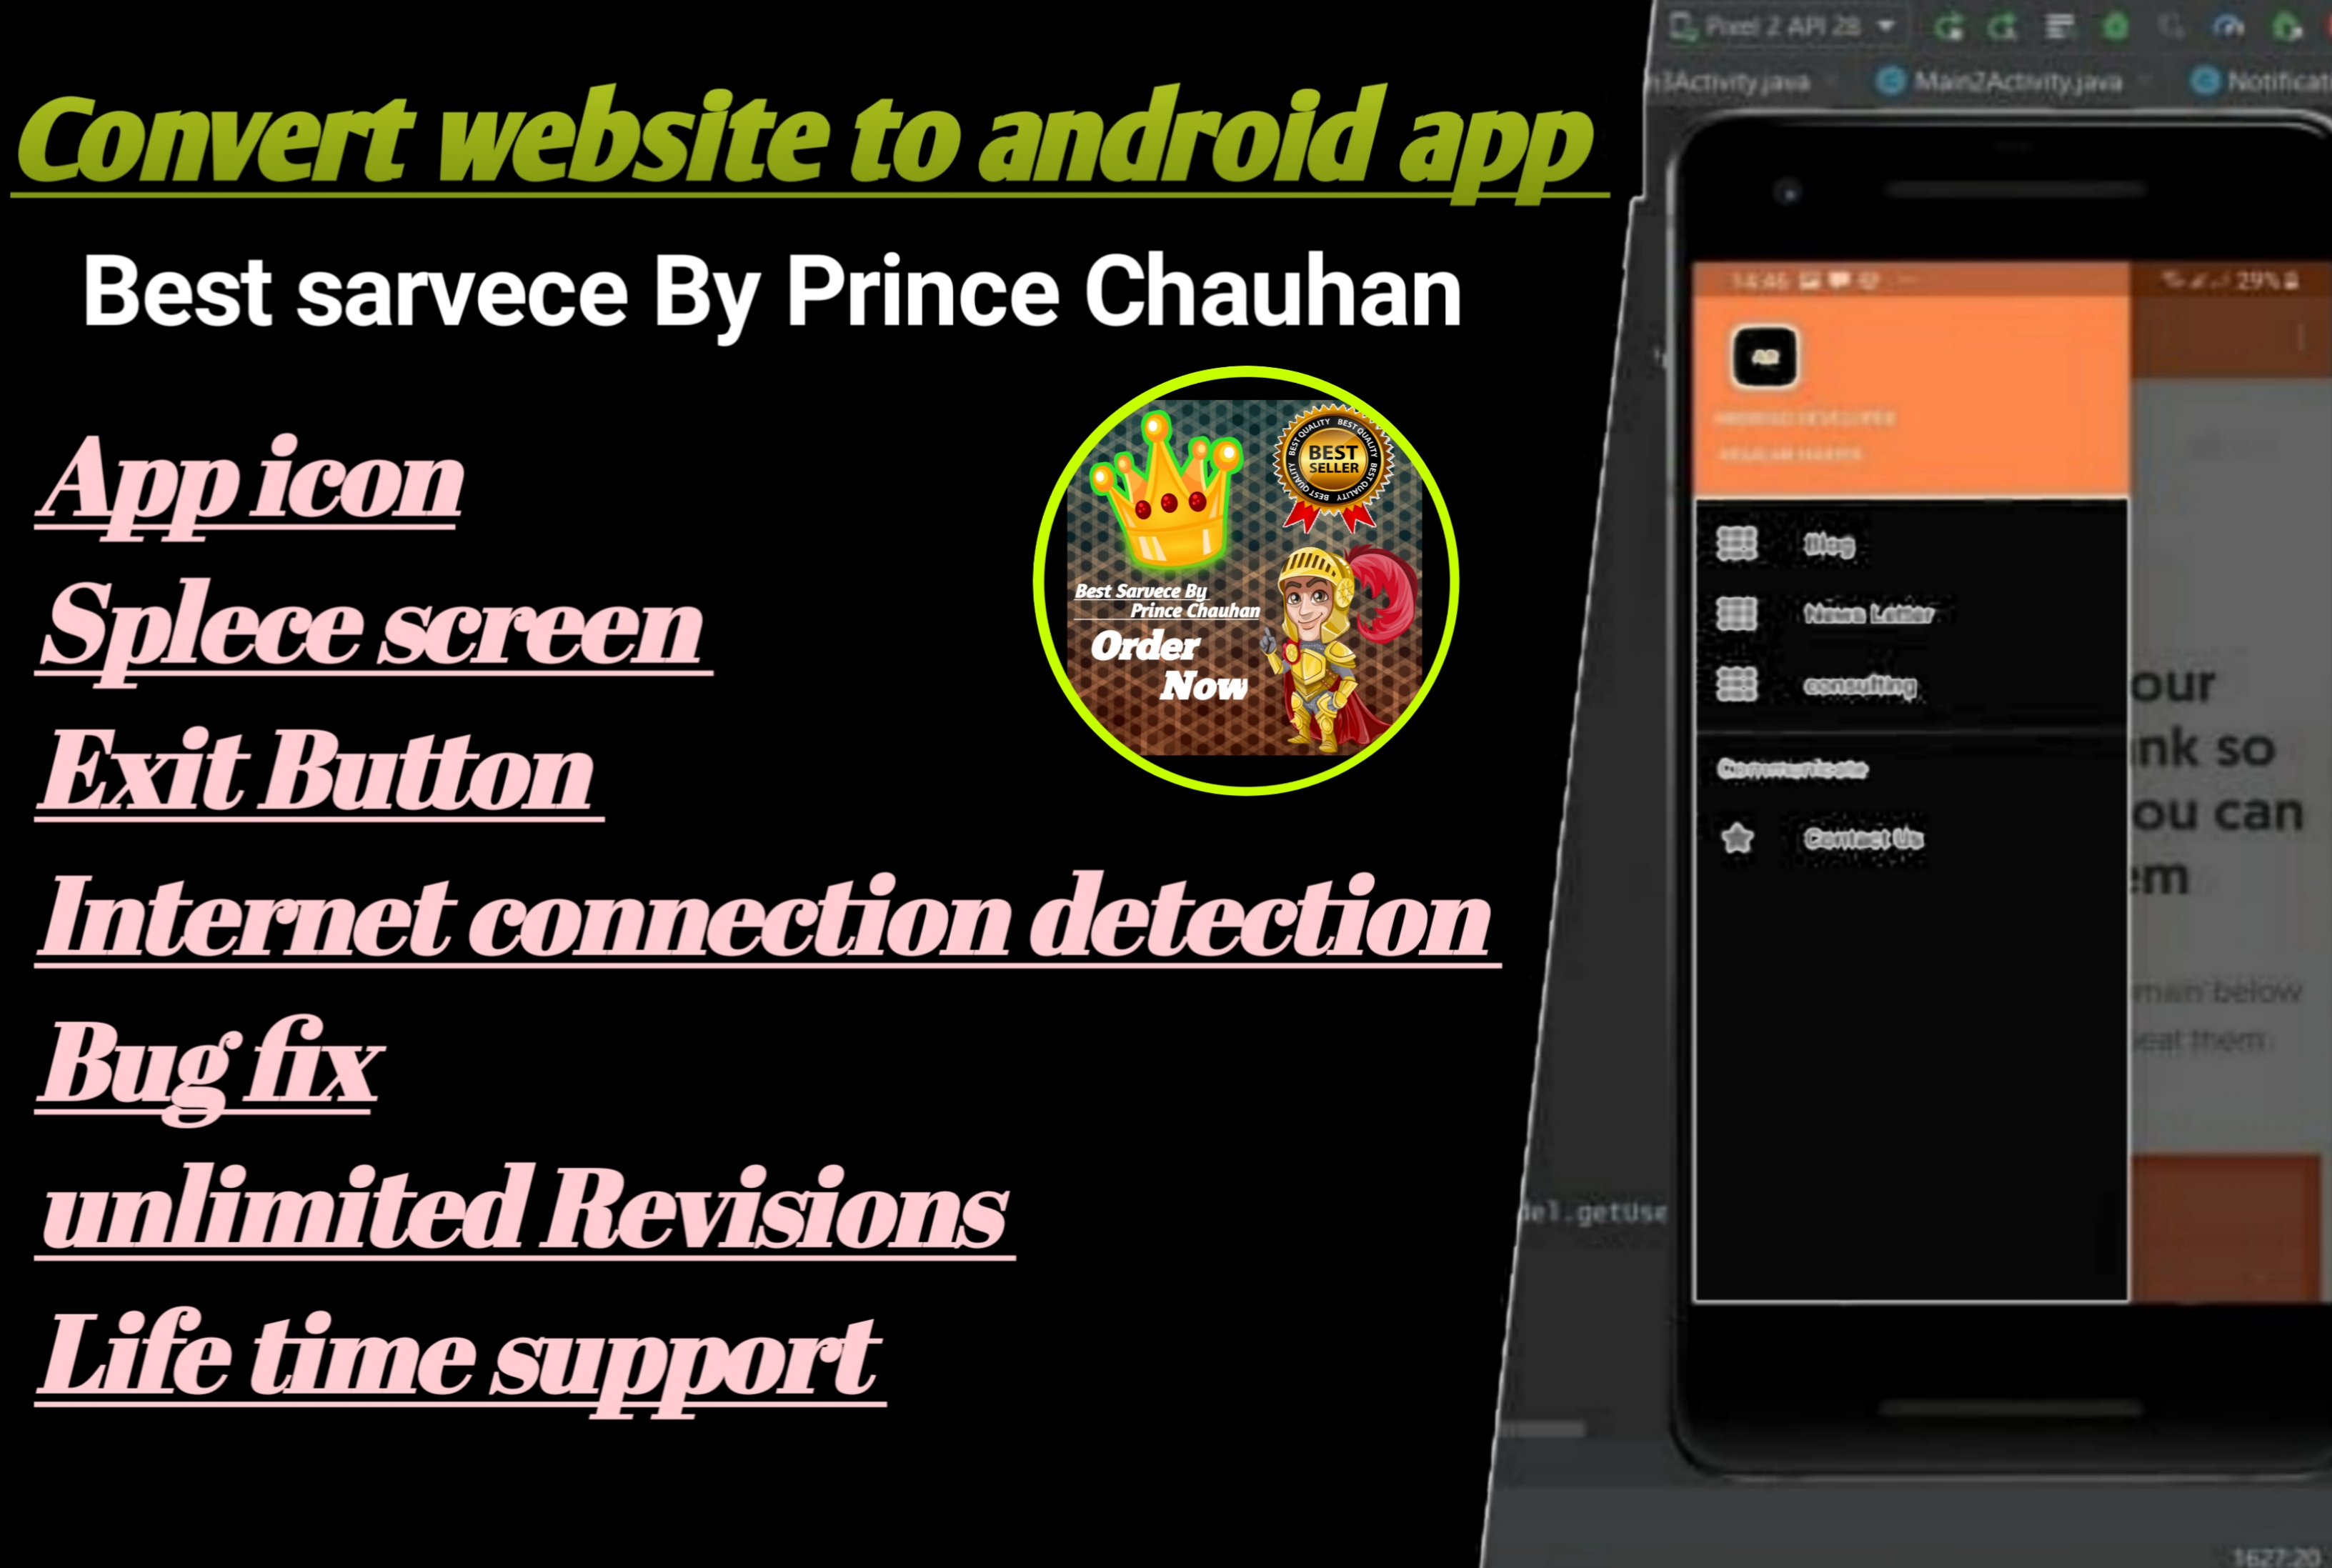 I will convert website to android app using webview